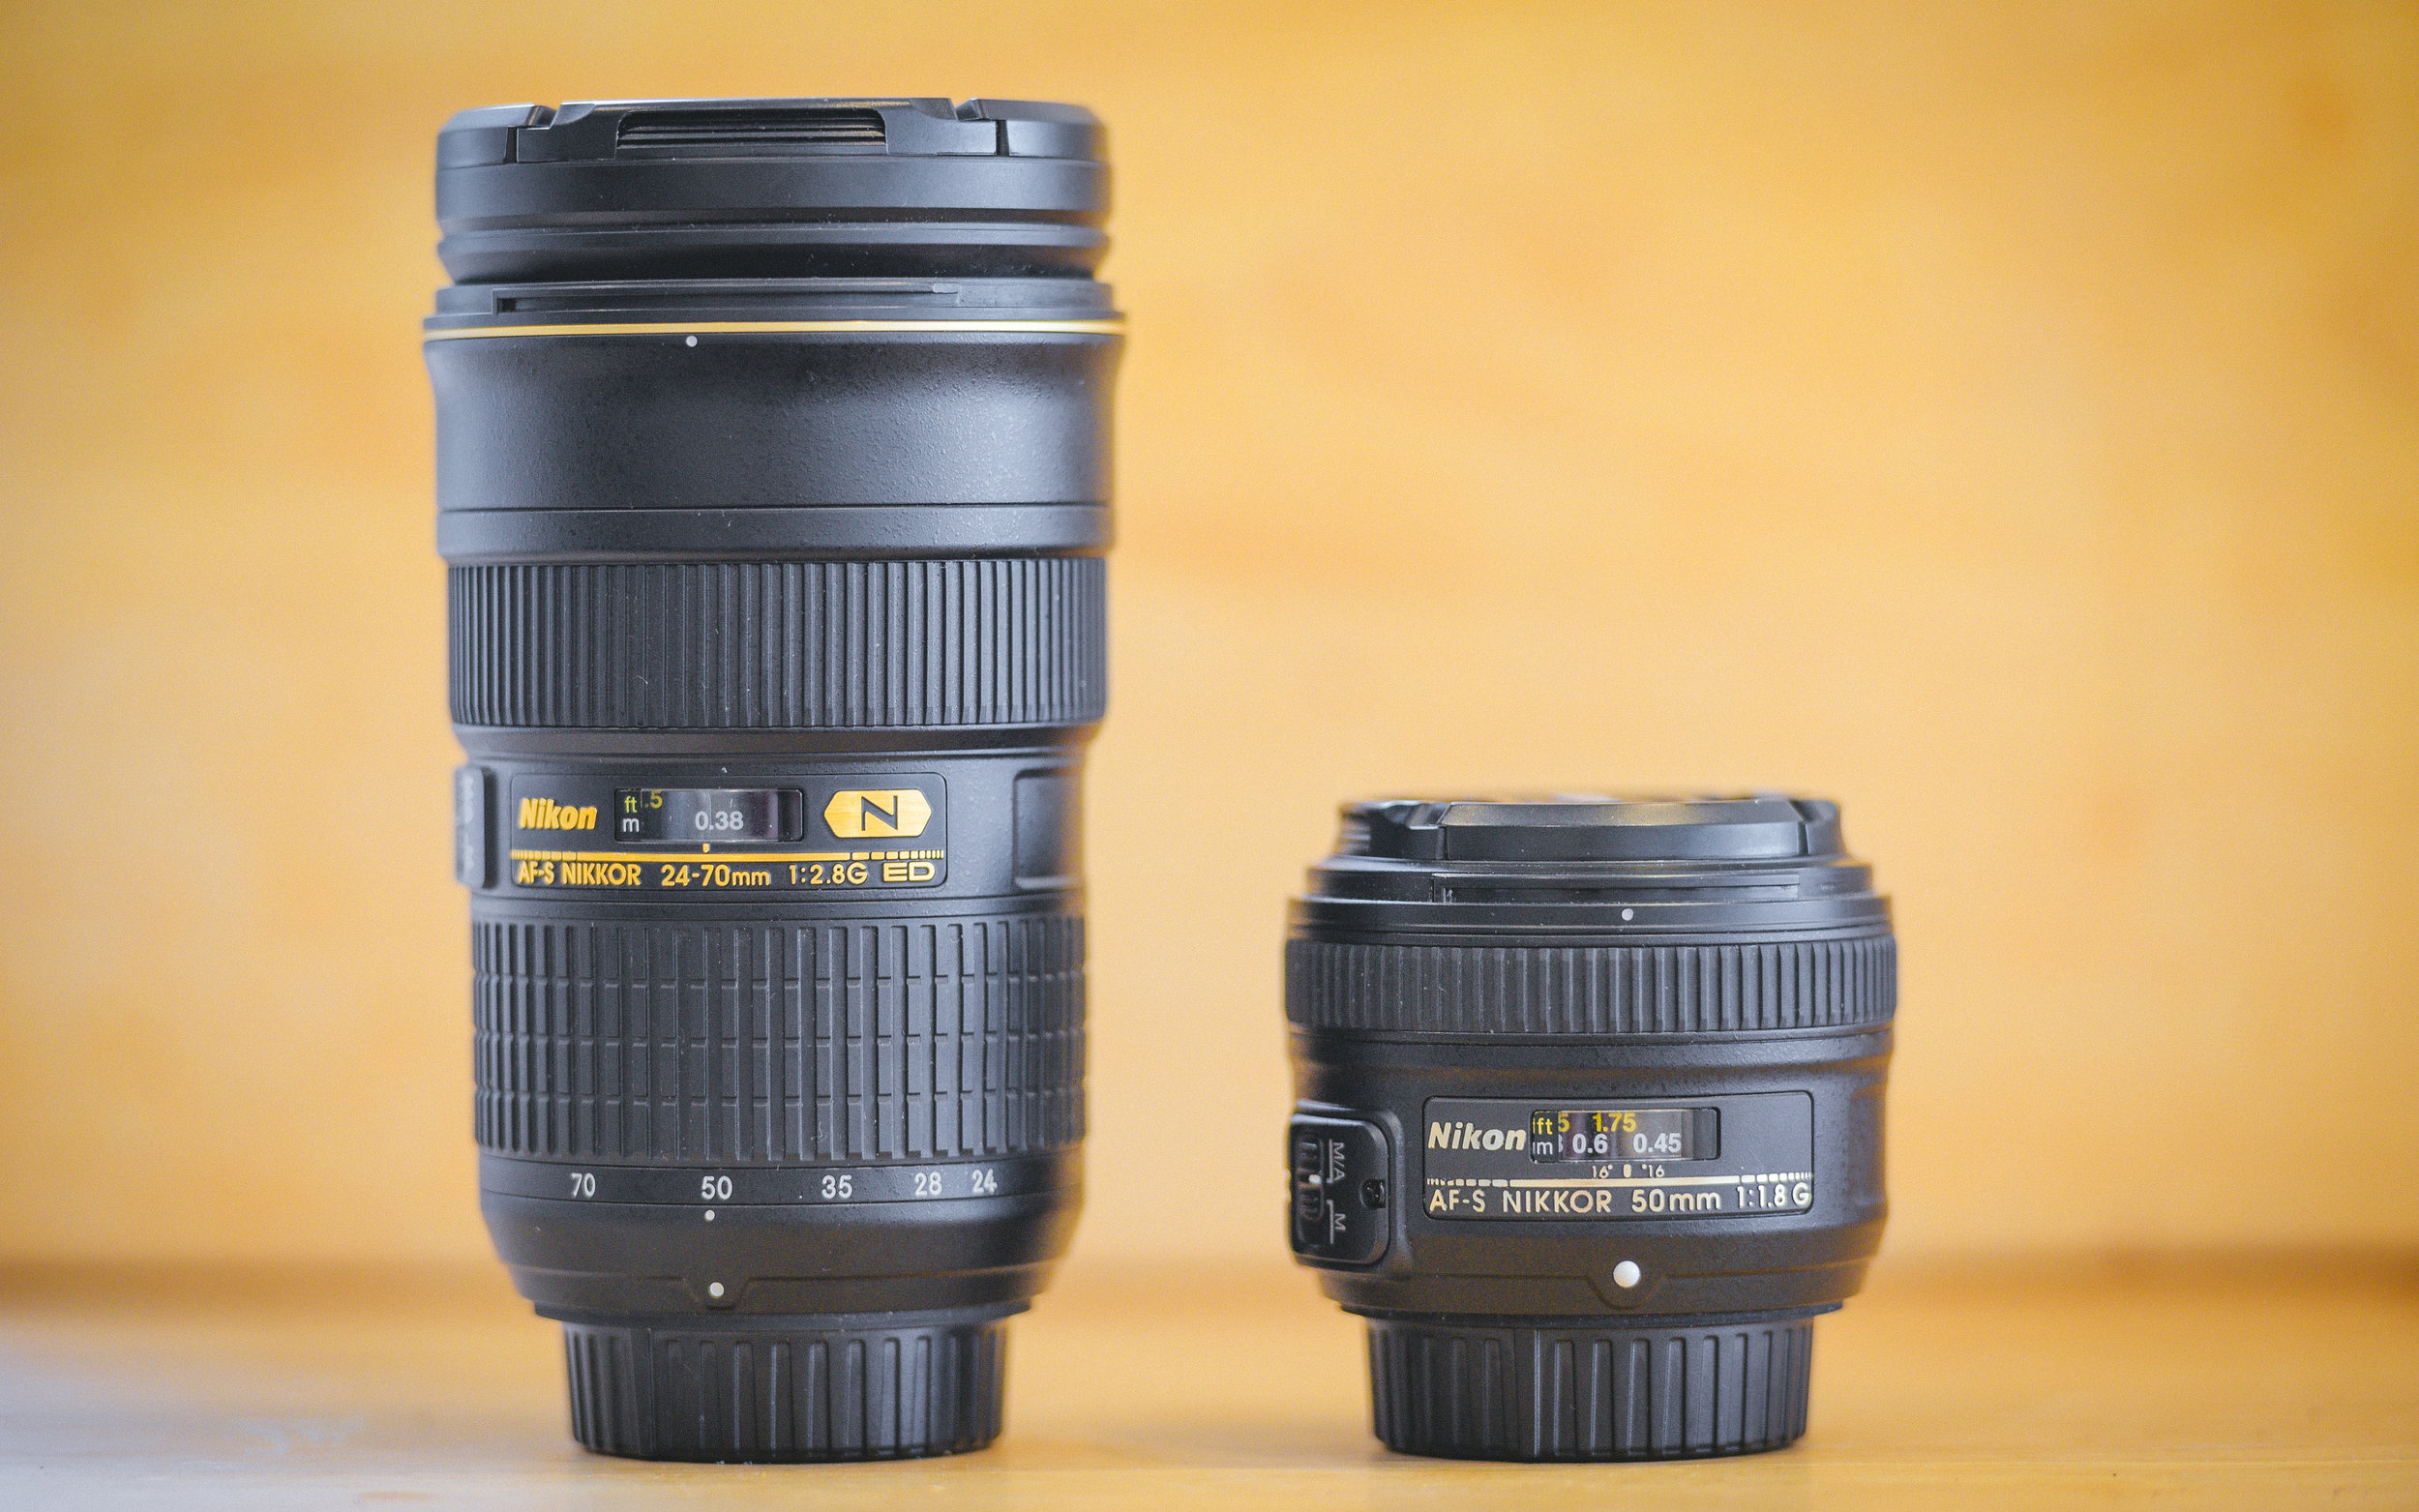 The lens on the left is the Nikon AF-S 24-70mm f/2.8 G ED, a constant aperture zoom lens aimed at Nikon's professional customers, the lens on the right is the Nikon AF-S 50mm f/1.8 G, a prime lens aimed at people looking for a cheap standard prime with full-frame coverage.